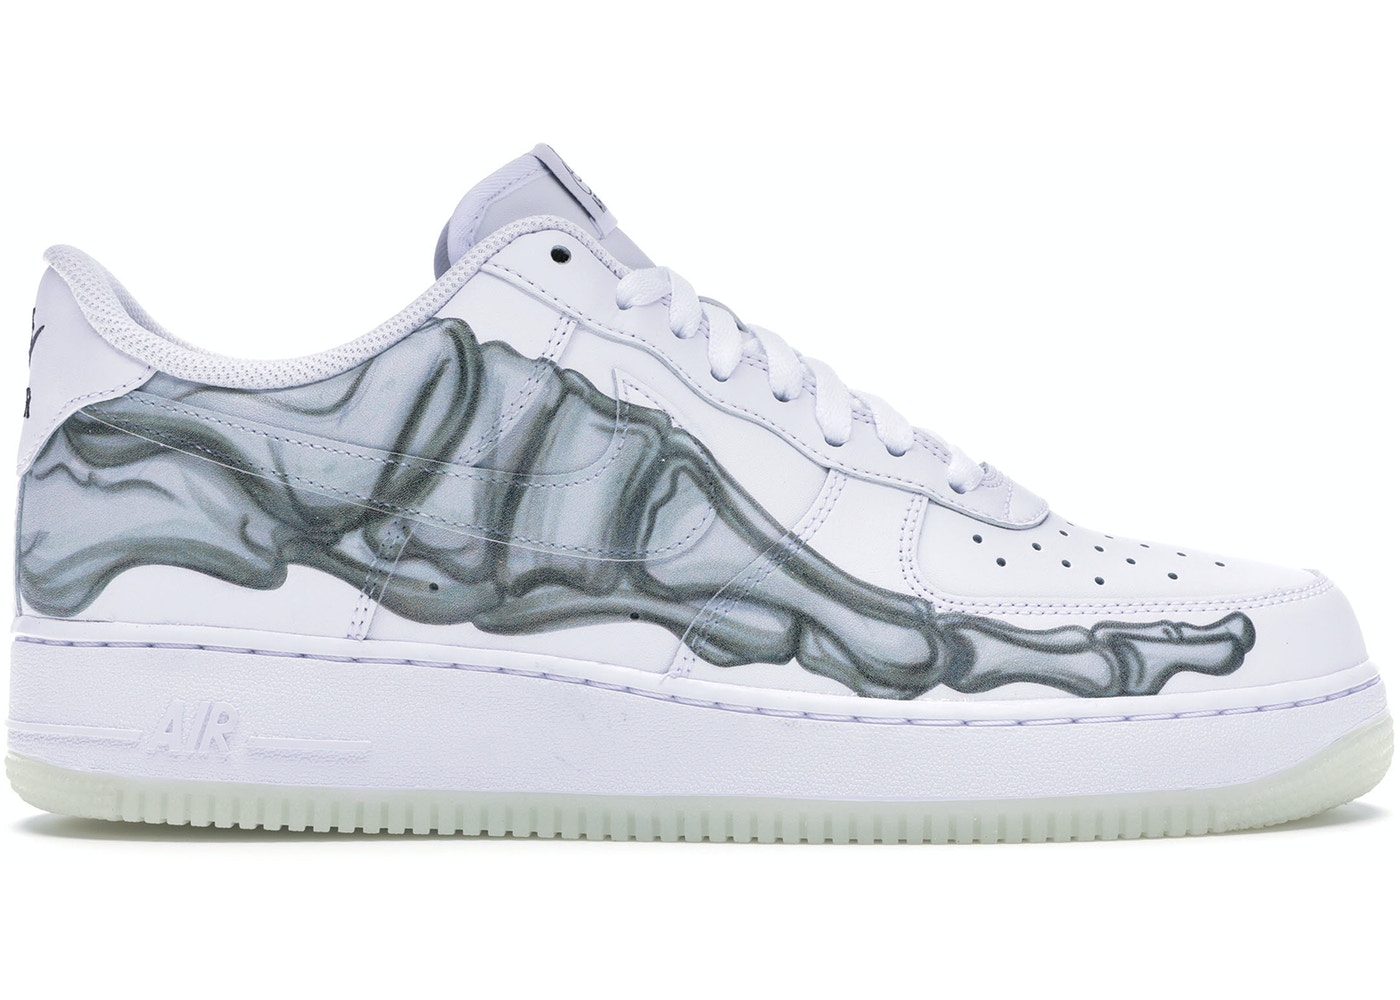 dignidad Transitorio Ya  Nike Air Force 1 Low Skeleton Halloween (2018) - BQ7541-100